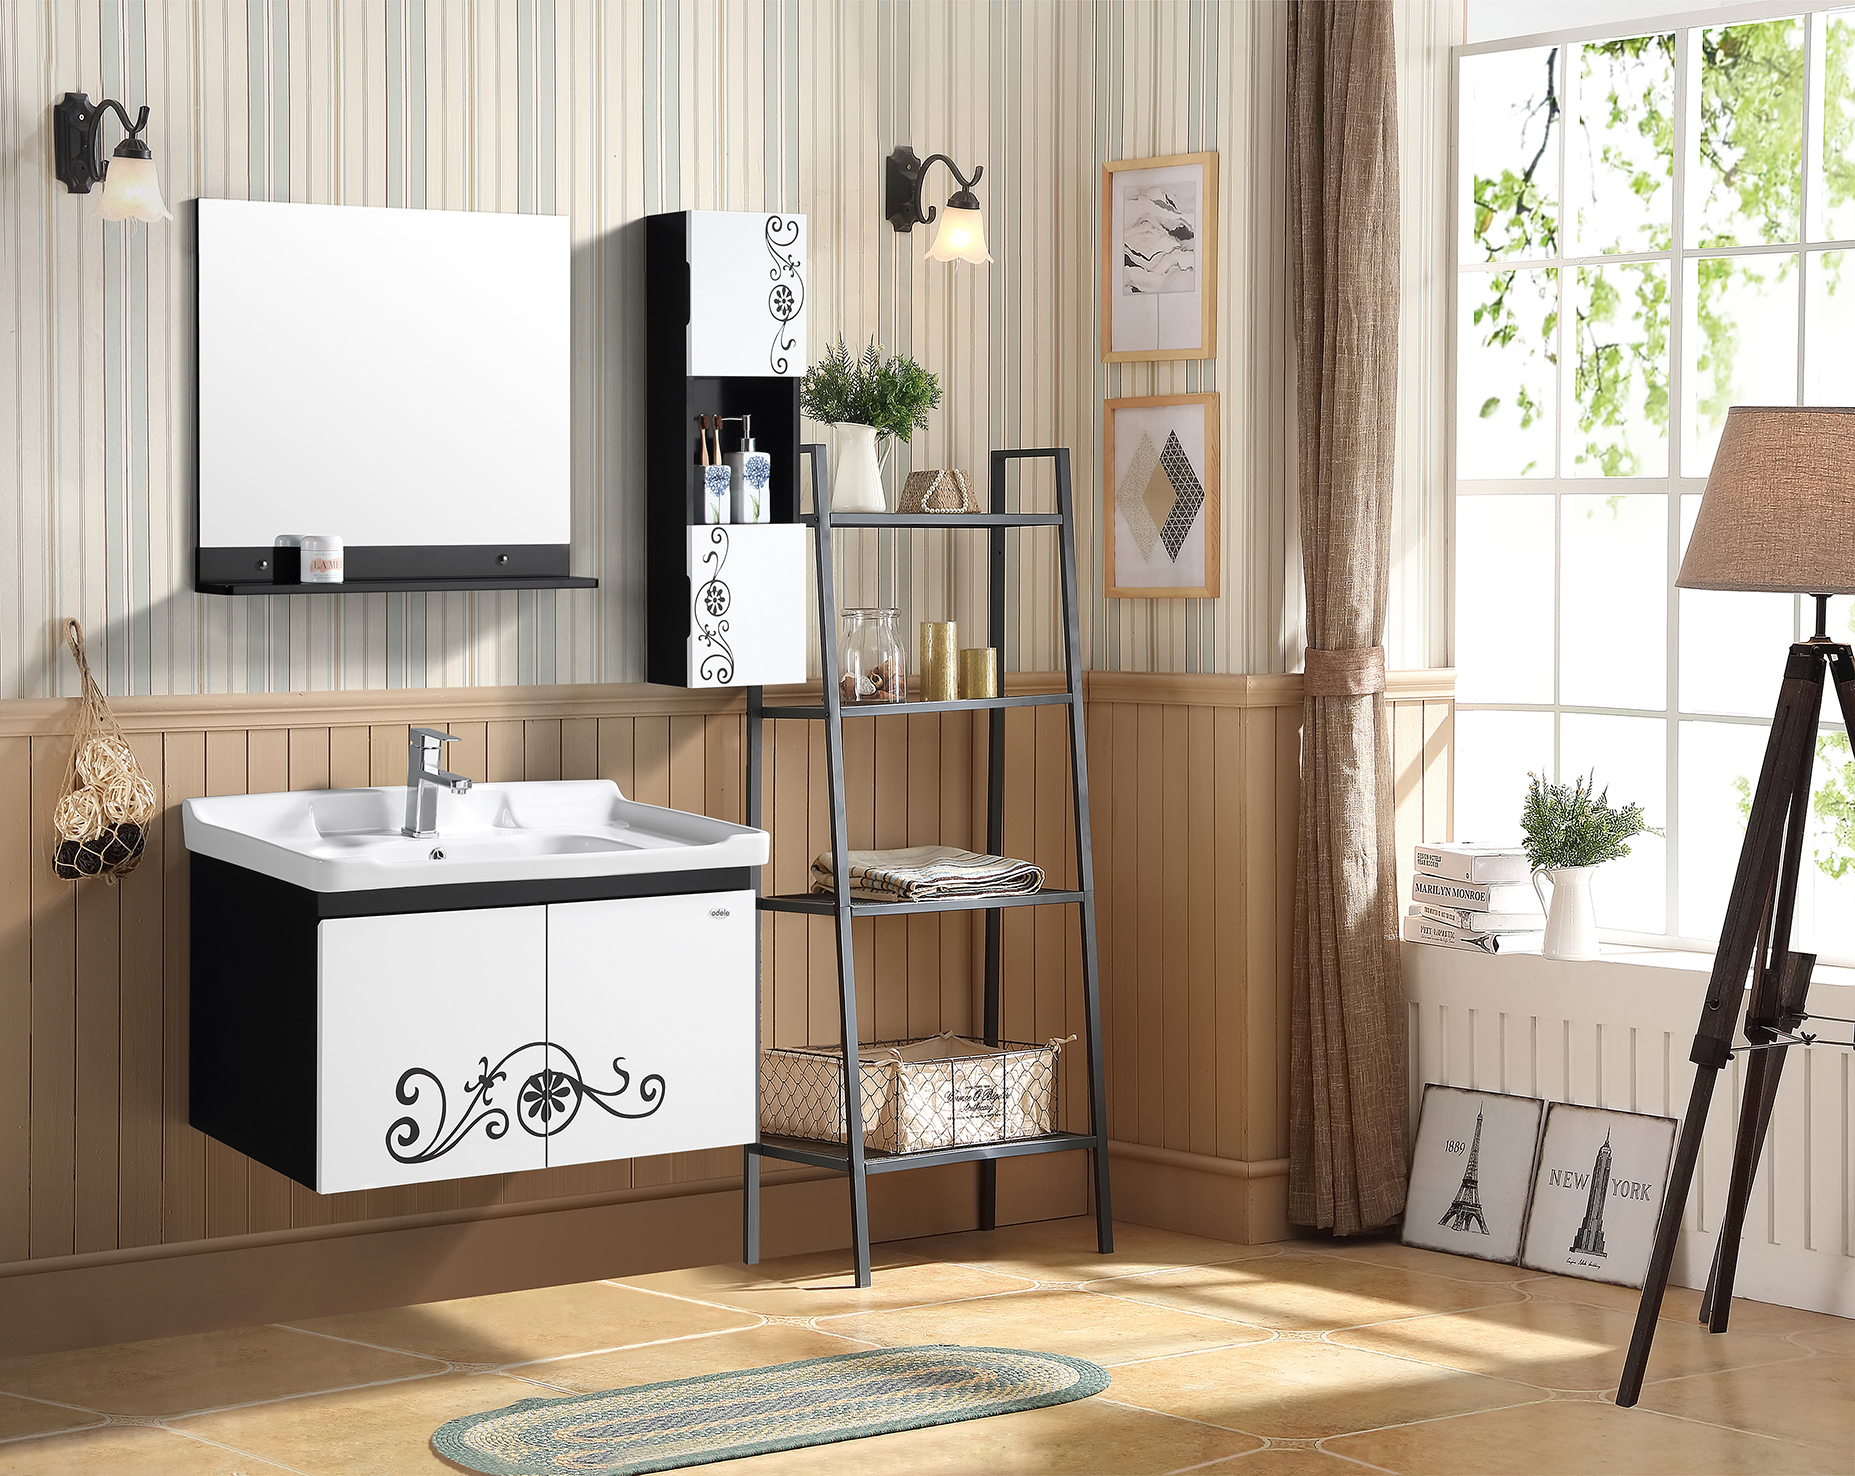 Thrift Bath Vanity in Black & White Colour by HomeTown